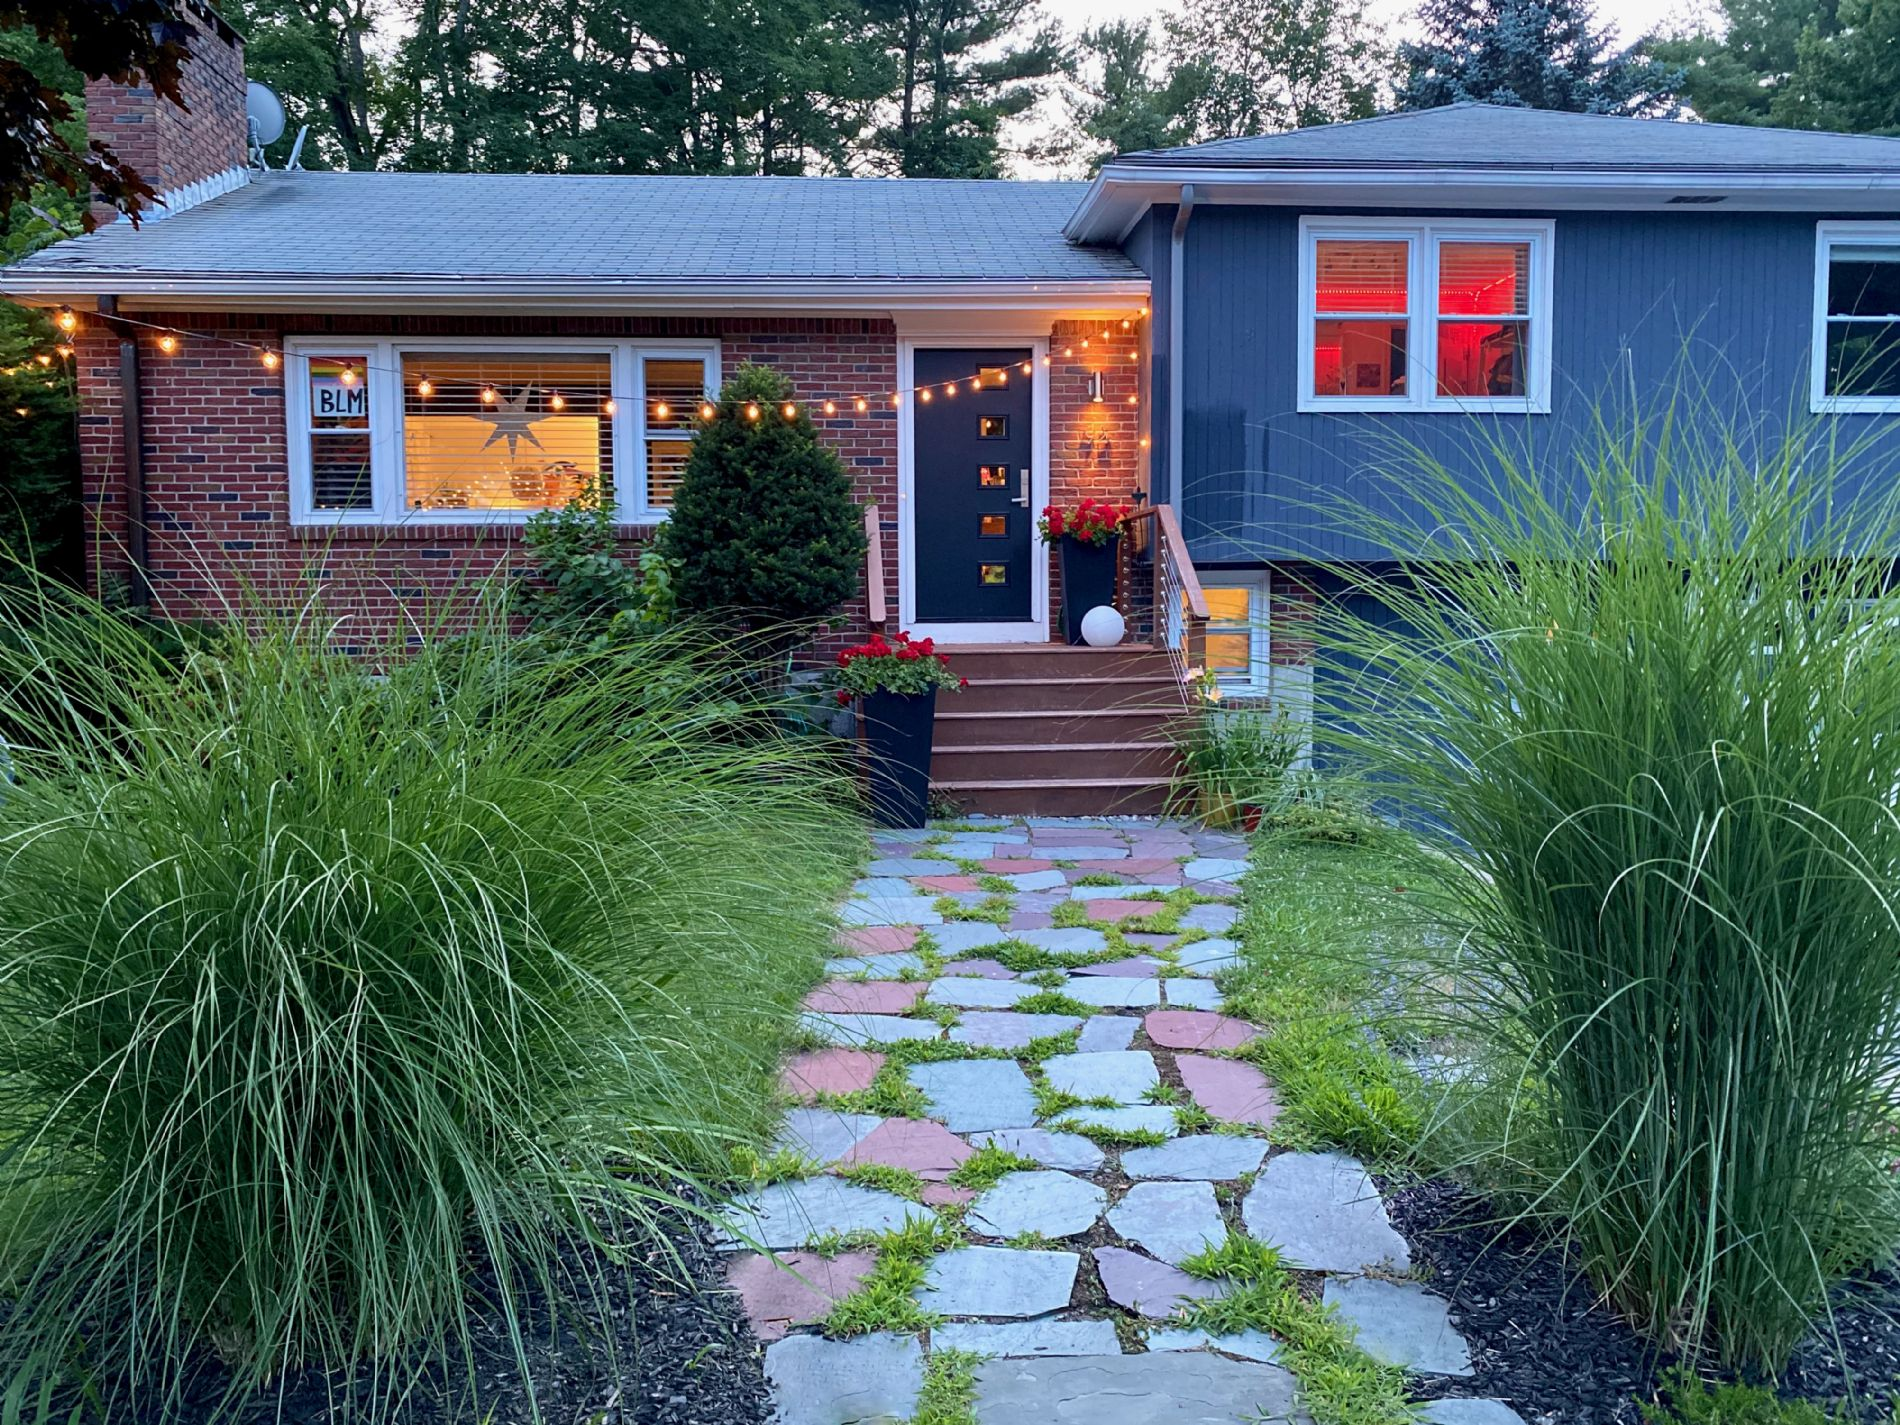 Chestnut Hill Home, MA Real Estate Listing